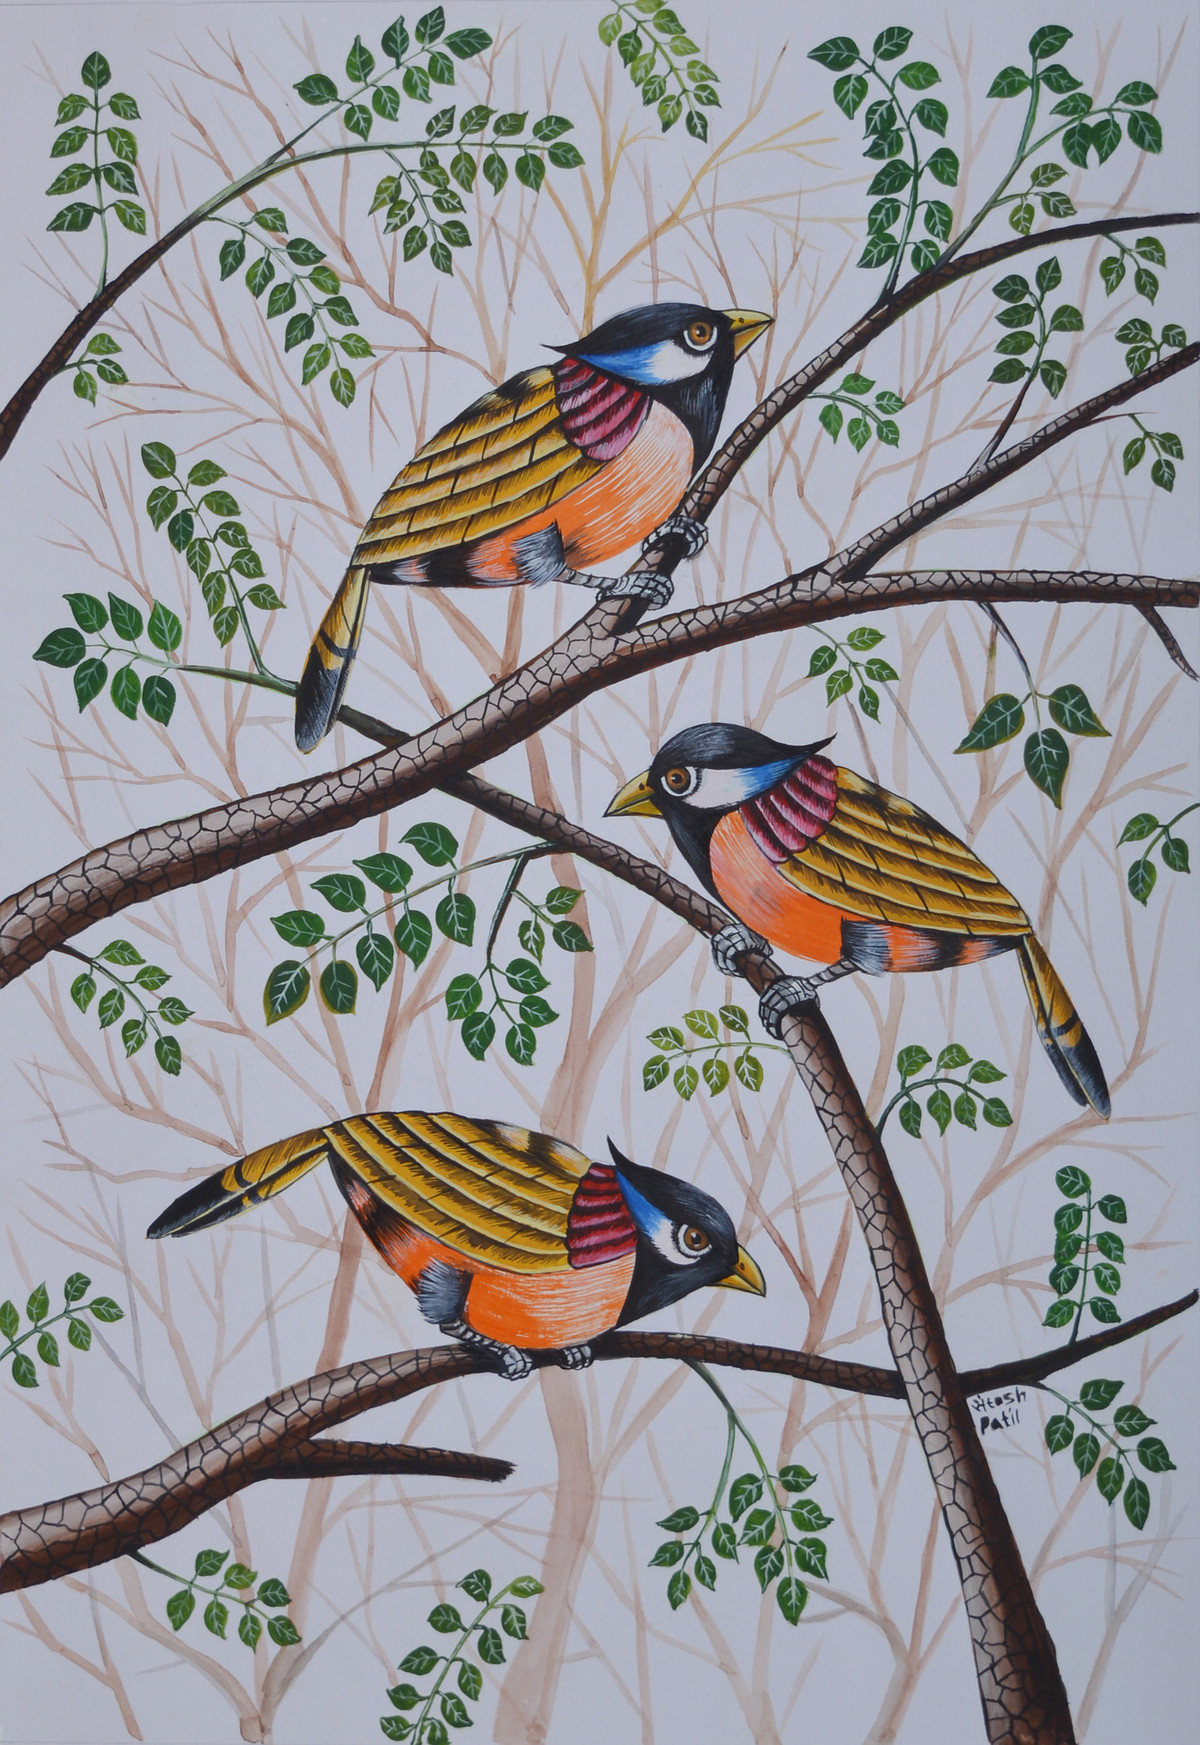 Birds Painting 63 by santosh patil, Expressionism Painting, Watercolor on Paper, Gray color